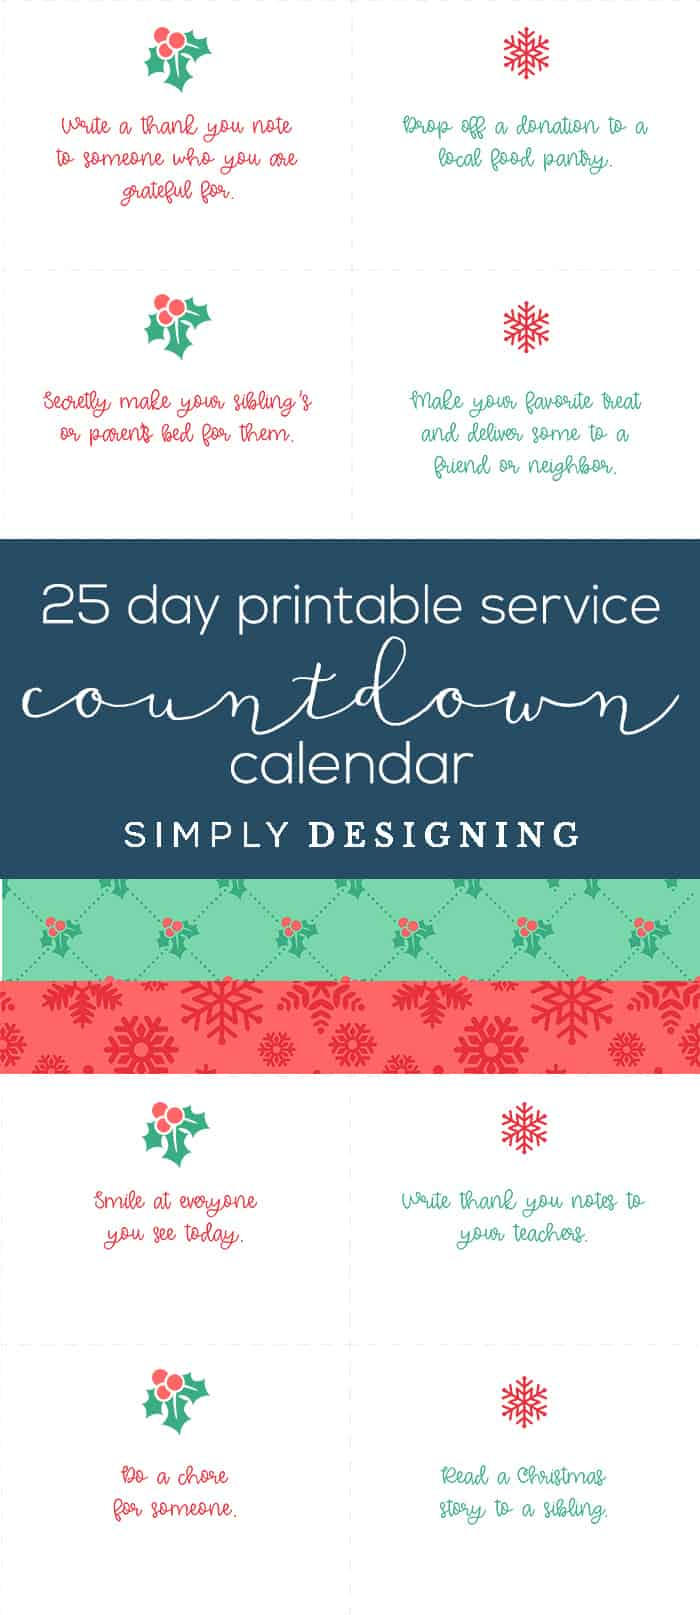 picture relating to Free Printable Countdown Calendar identified as Farmhouse Xmas Decorations + Printable Countdown Calendar